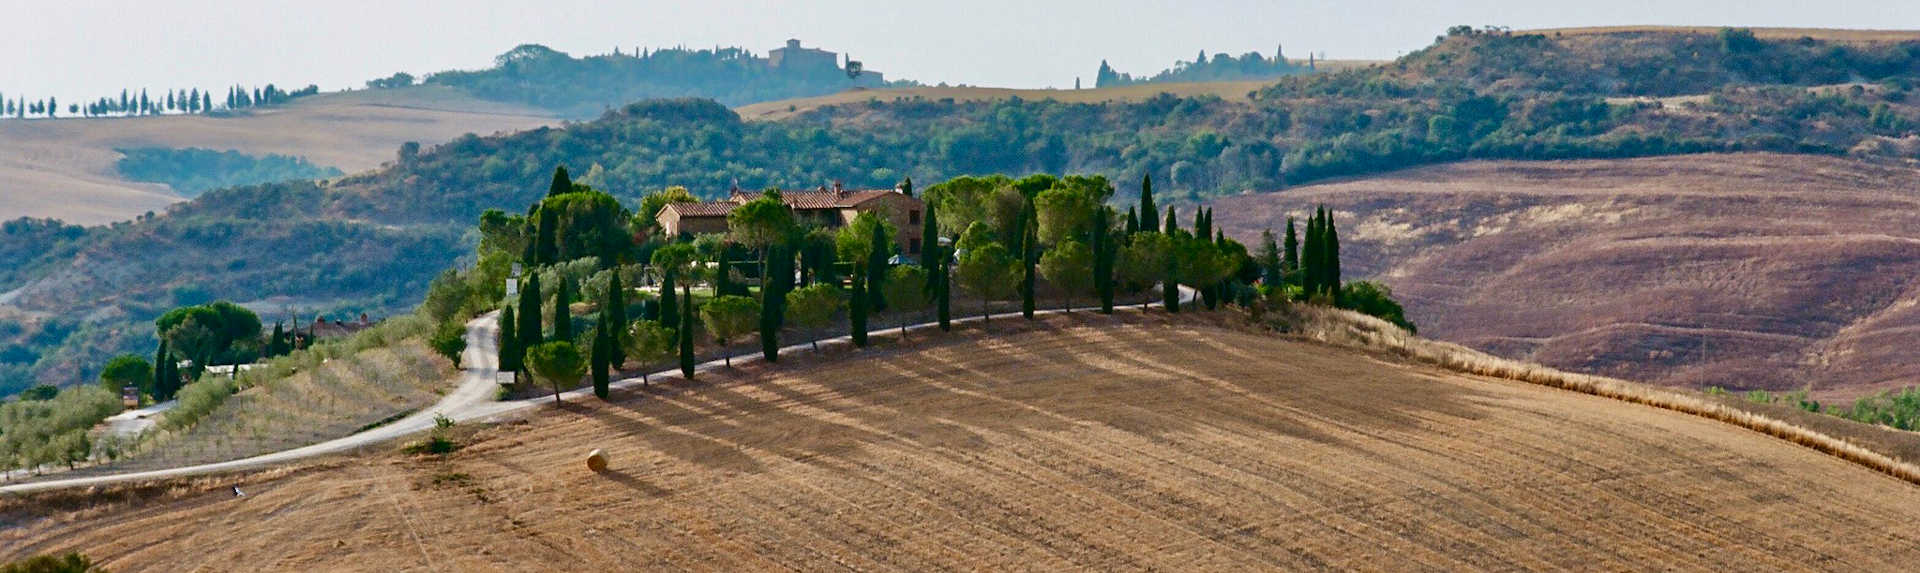 What is the best town to stay in Tuscany?